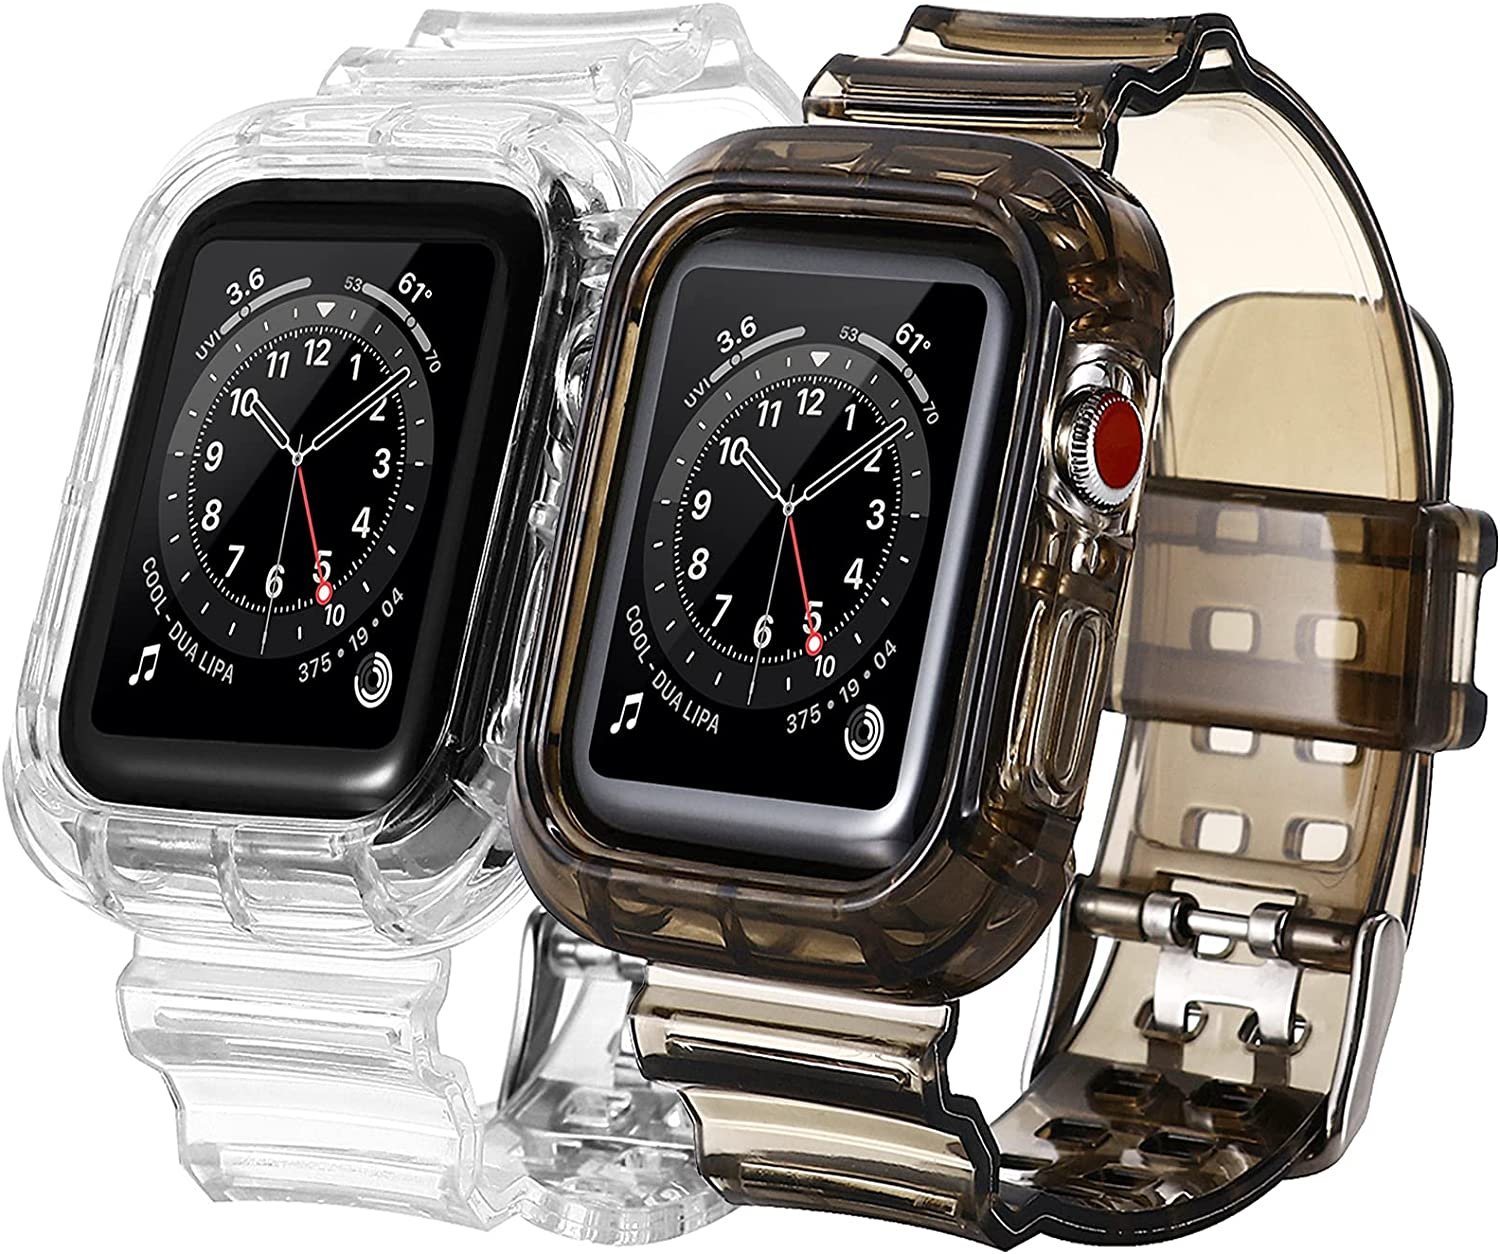 [2 PACK] Bands Compatible with Apple Watch Bands 42mm 44mm for Women Men, Transparent Clear Sports iWatch Bands with Bumper Case Replacement for Apple Watch SE & iWatch Series 6 5 4 3 2 1